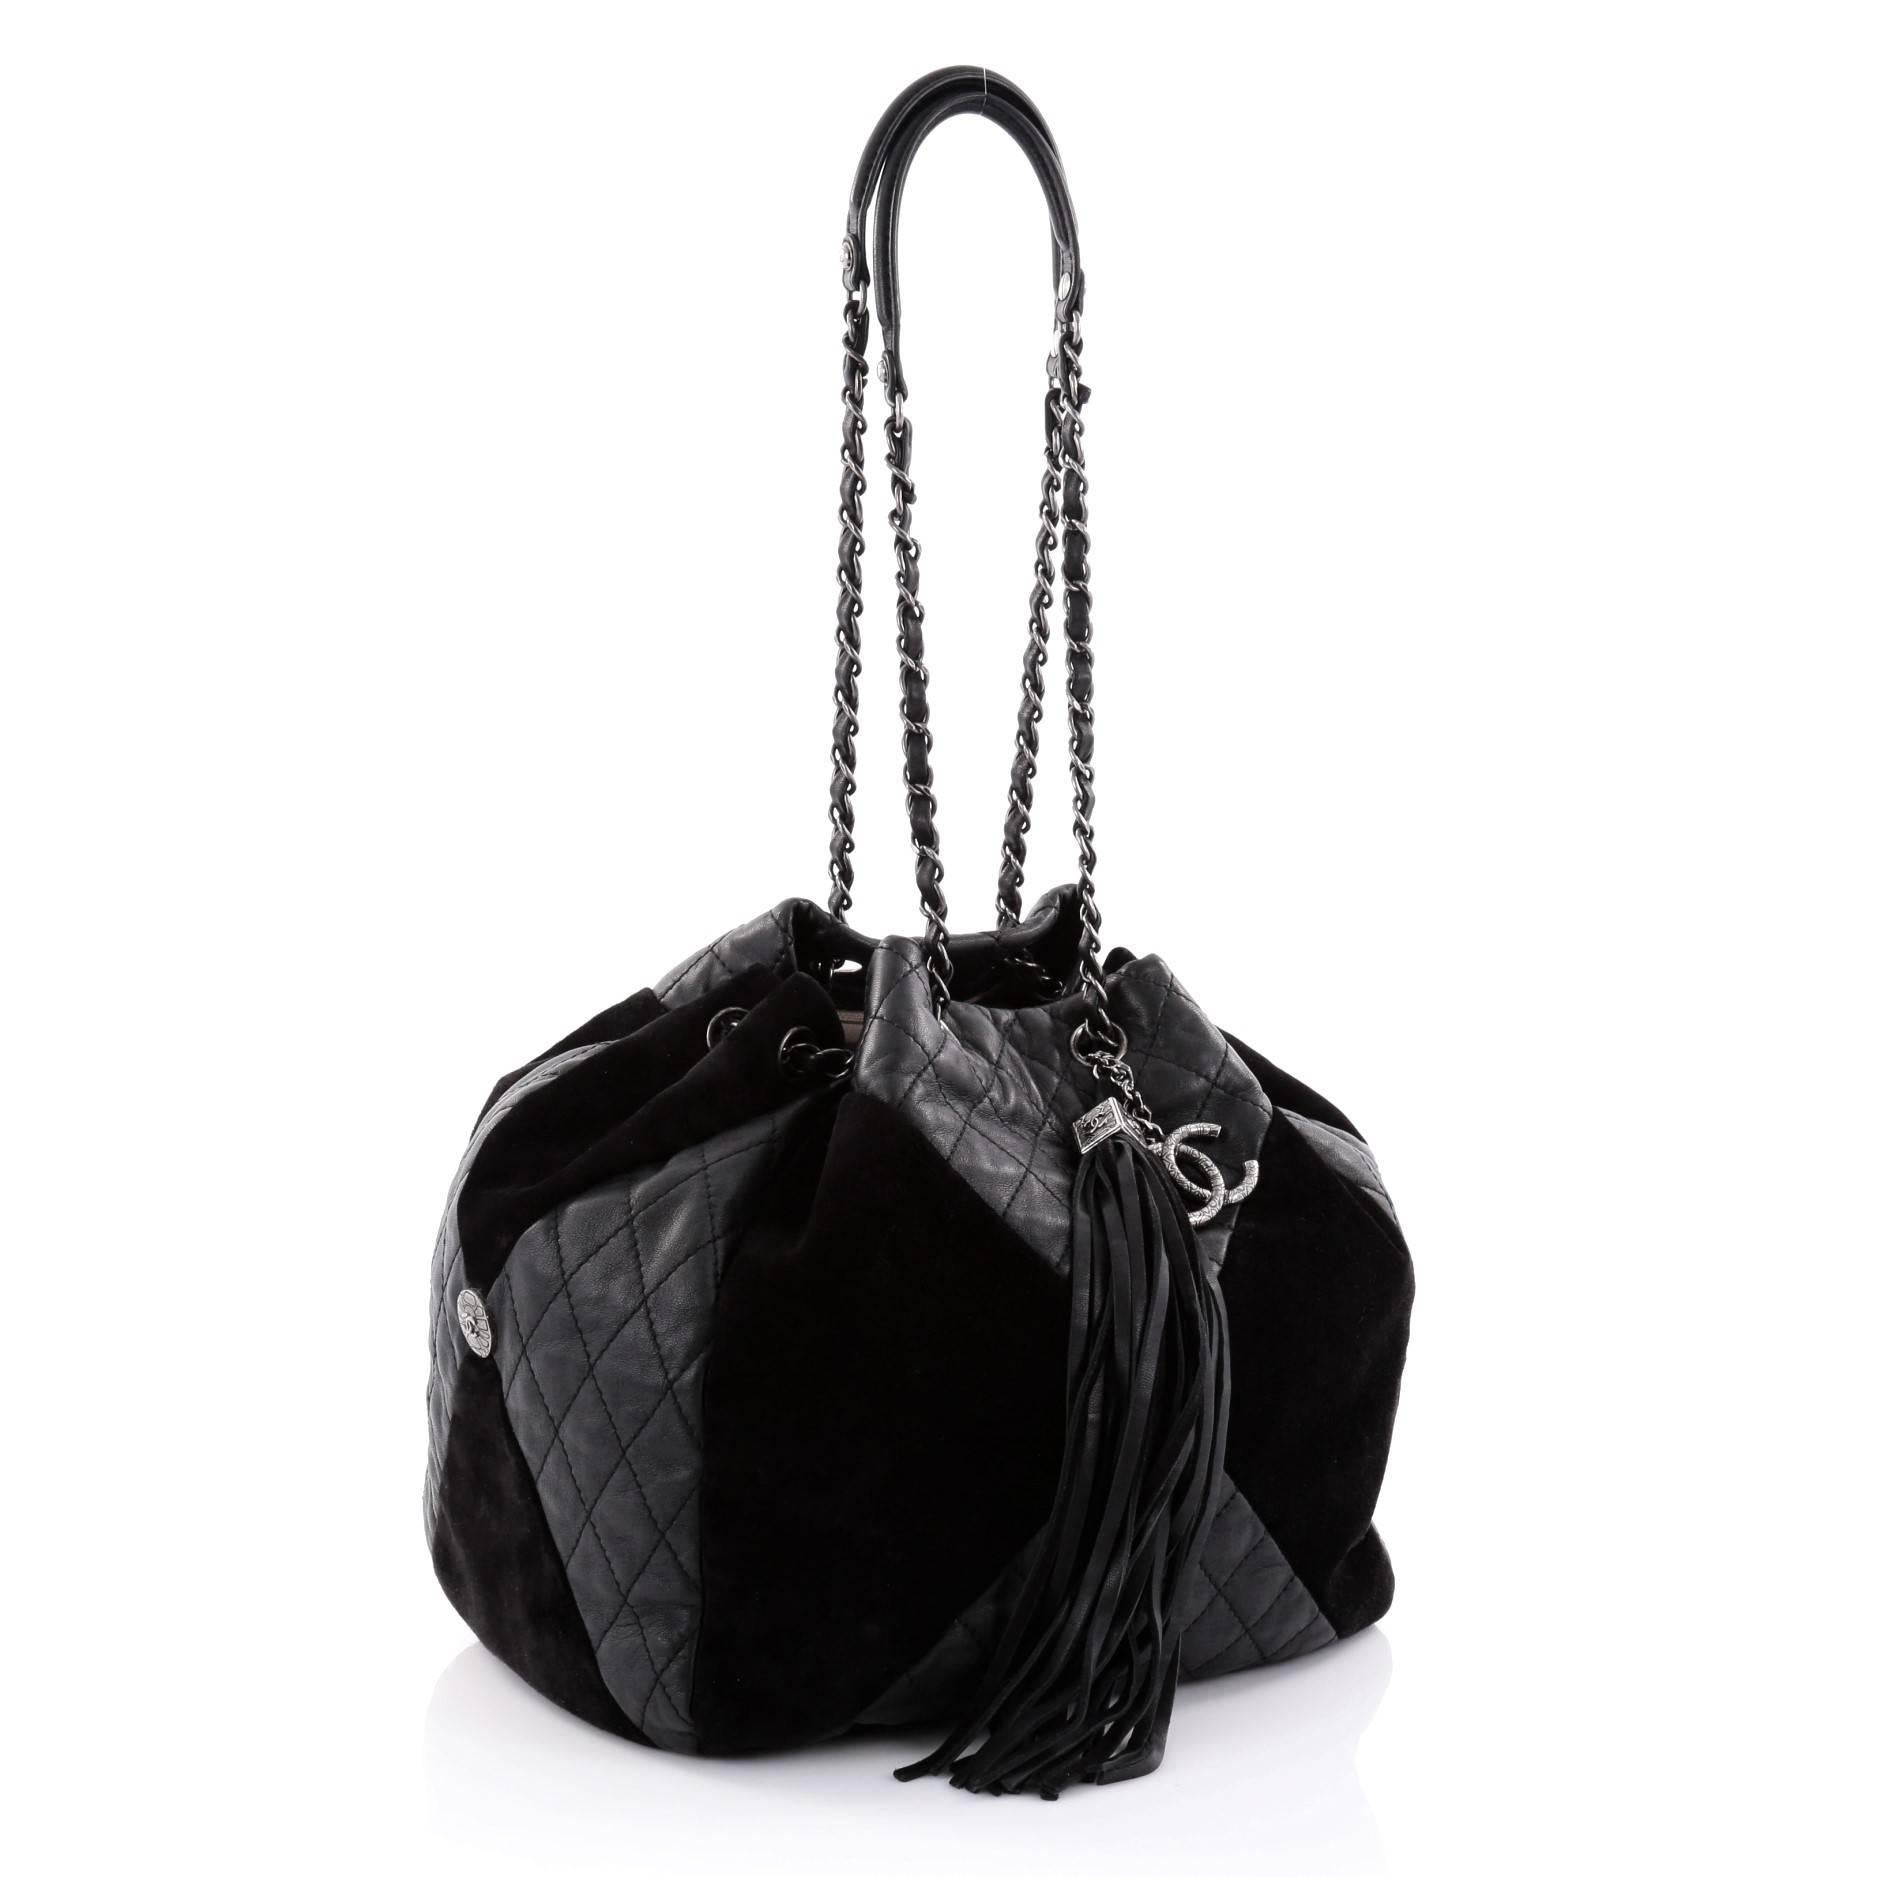 d7a0ef305738 Chanel Patchwork Drawstring Bag Quilted Leather and Suede Large at 1stdibs